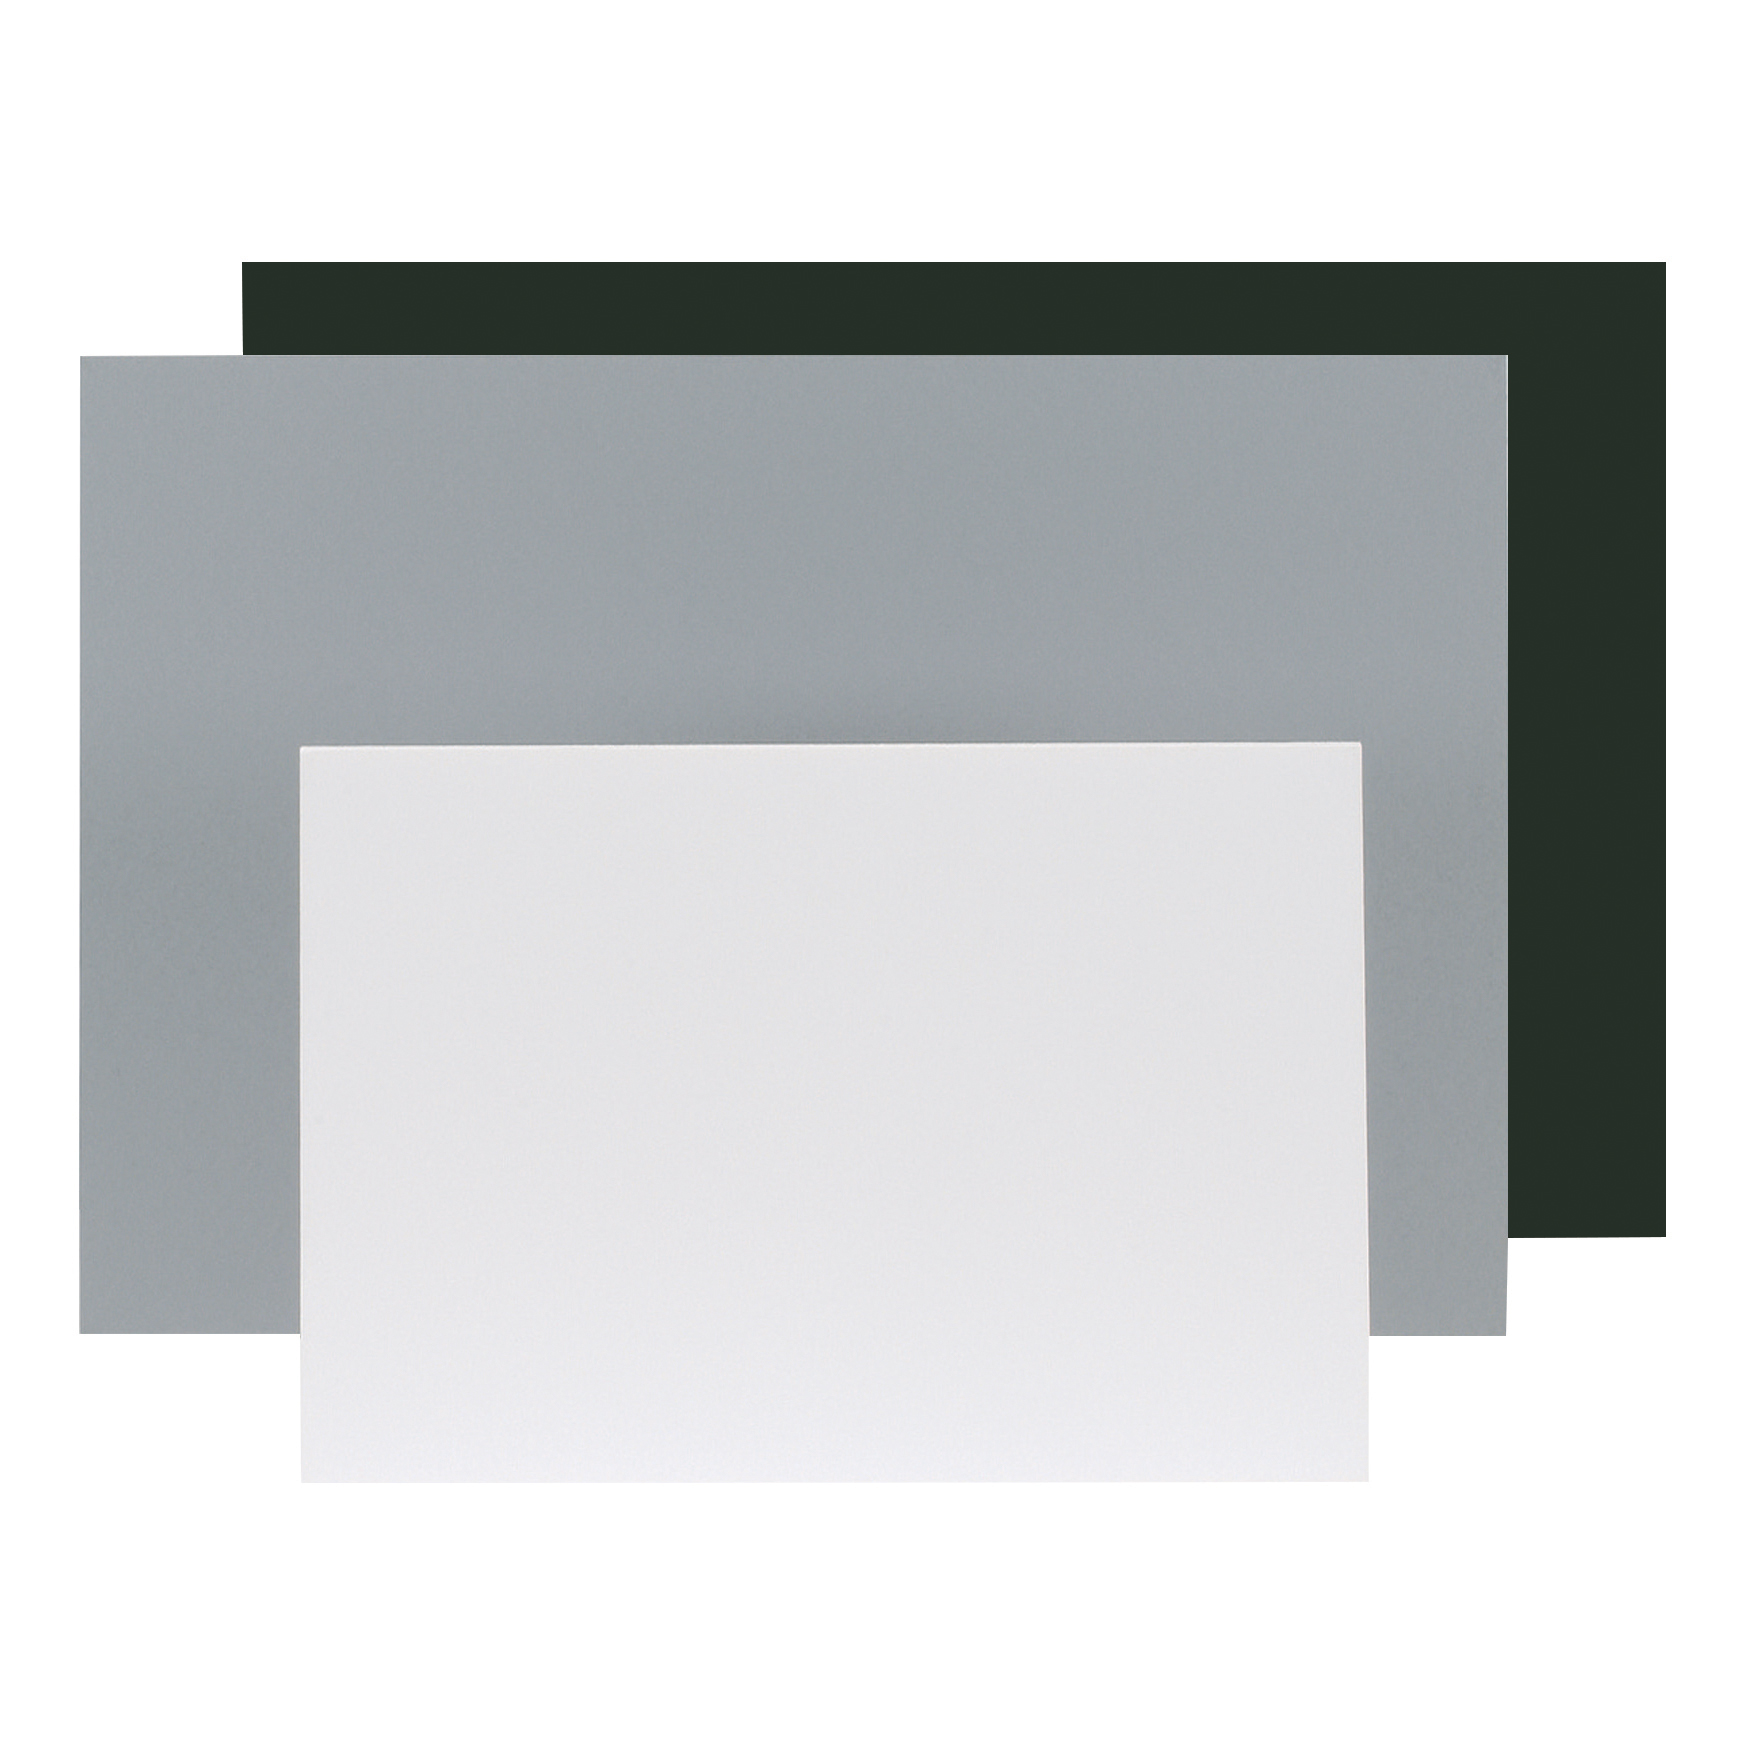 Display Foam Board Lightweight Durable CFC Free W594xD5xH840mm A1 Black & Grey Ref WF6001 [Pack 10]